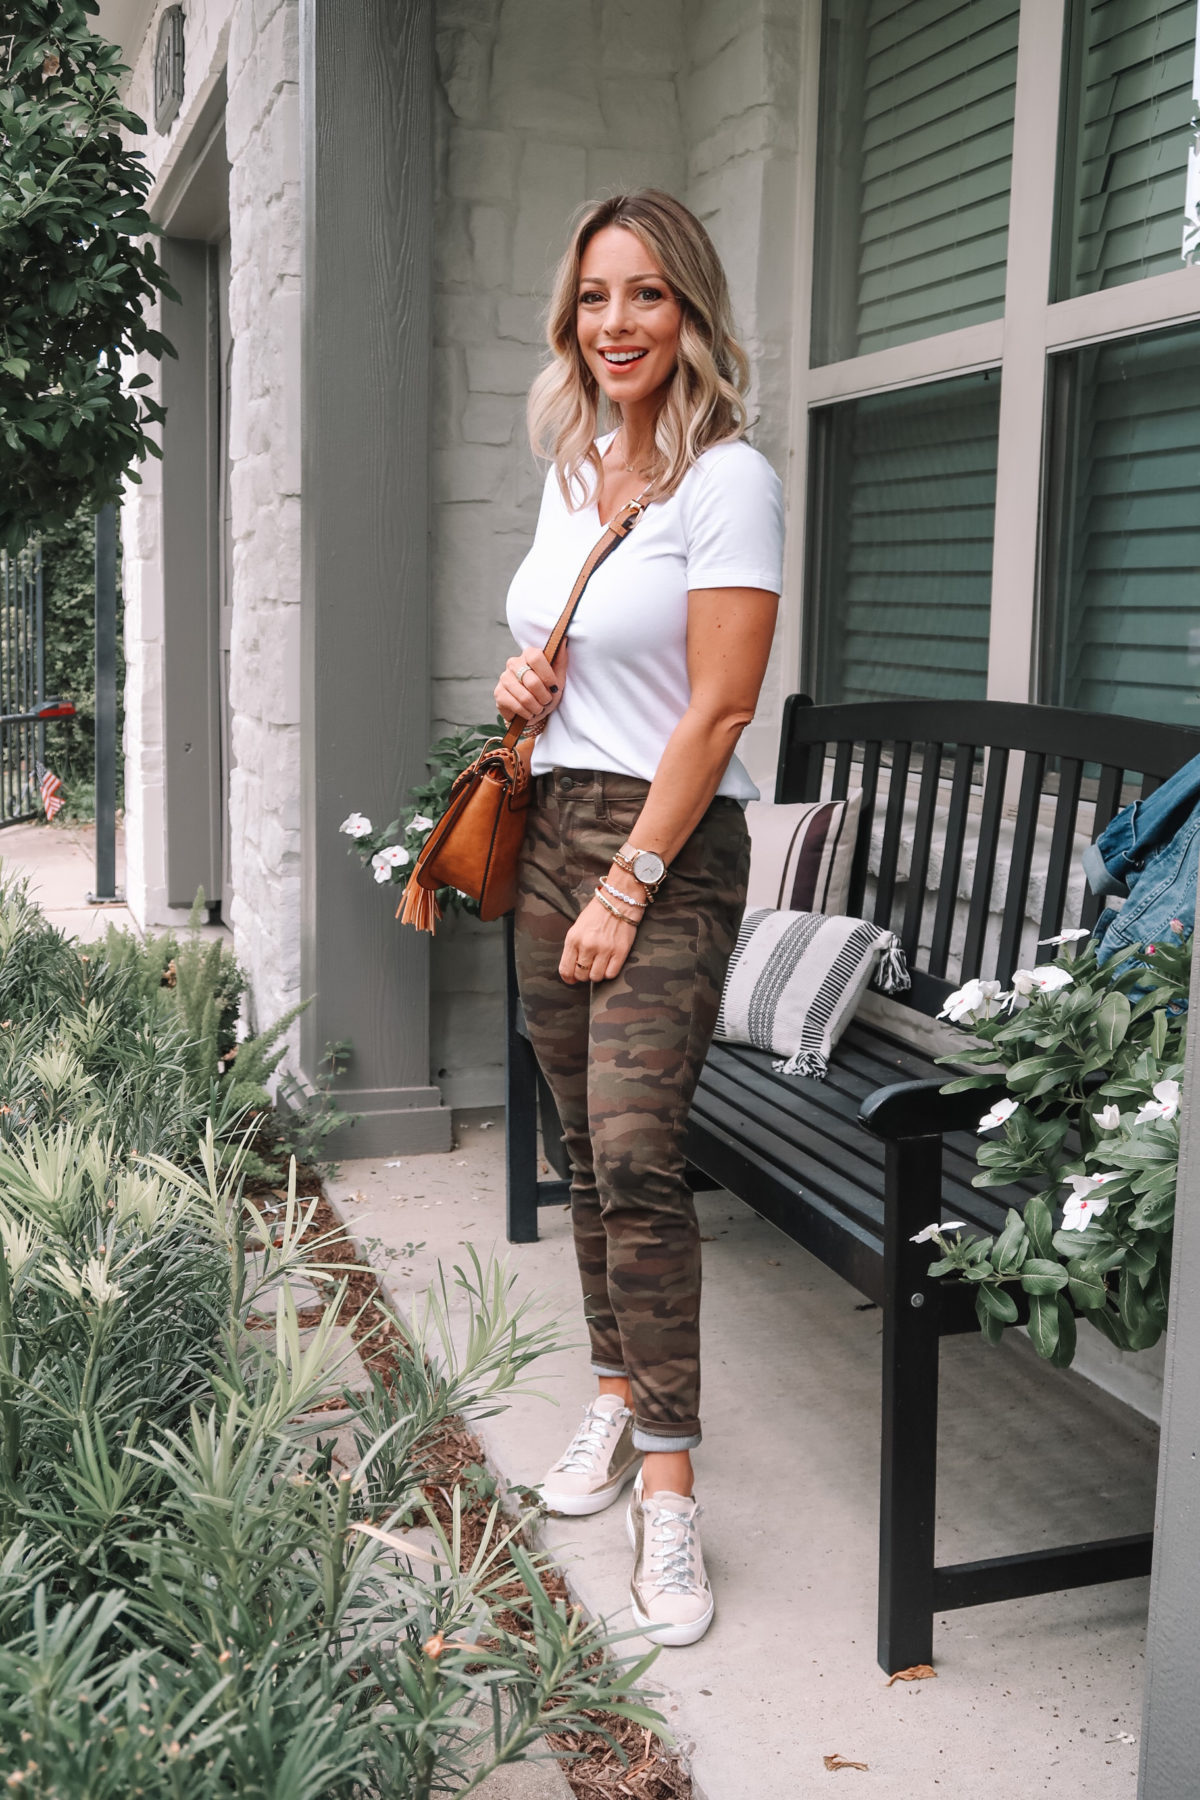 Outfits Lately, Amazon Essentials Tee, Camo Joggers, Star Sneakers, Crossbody Bag